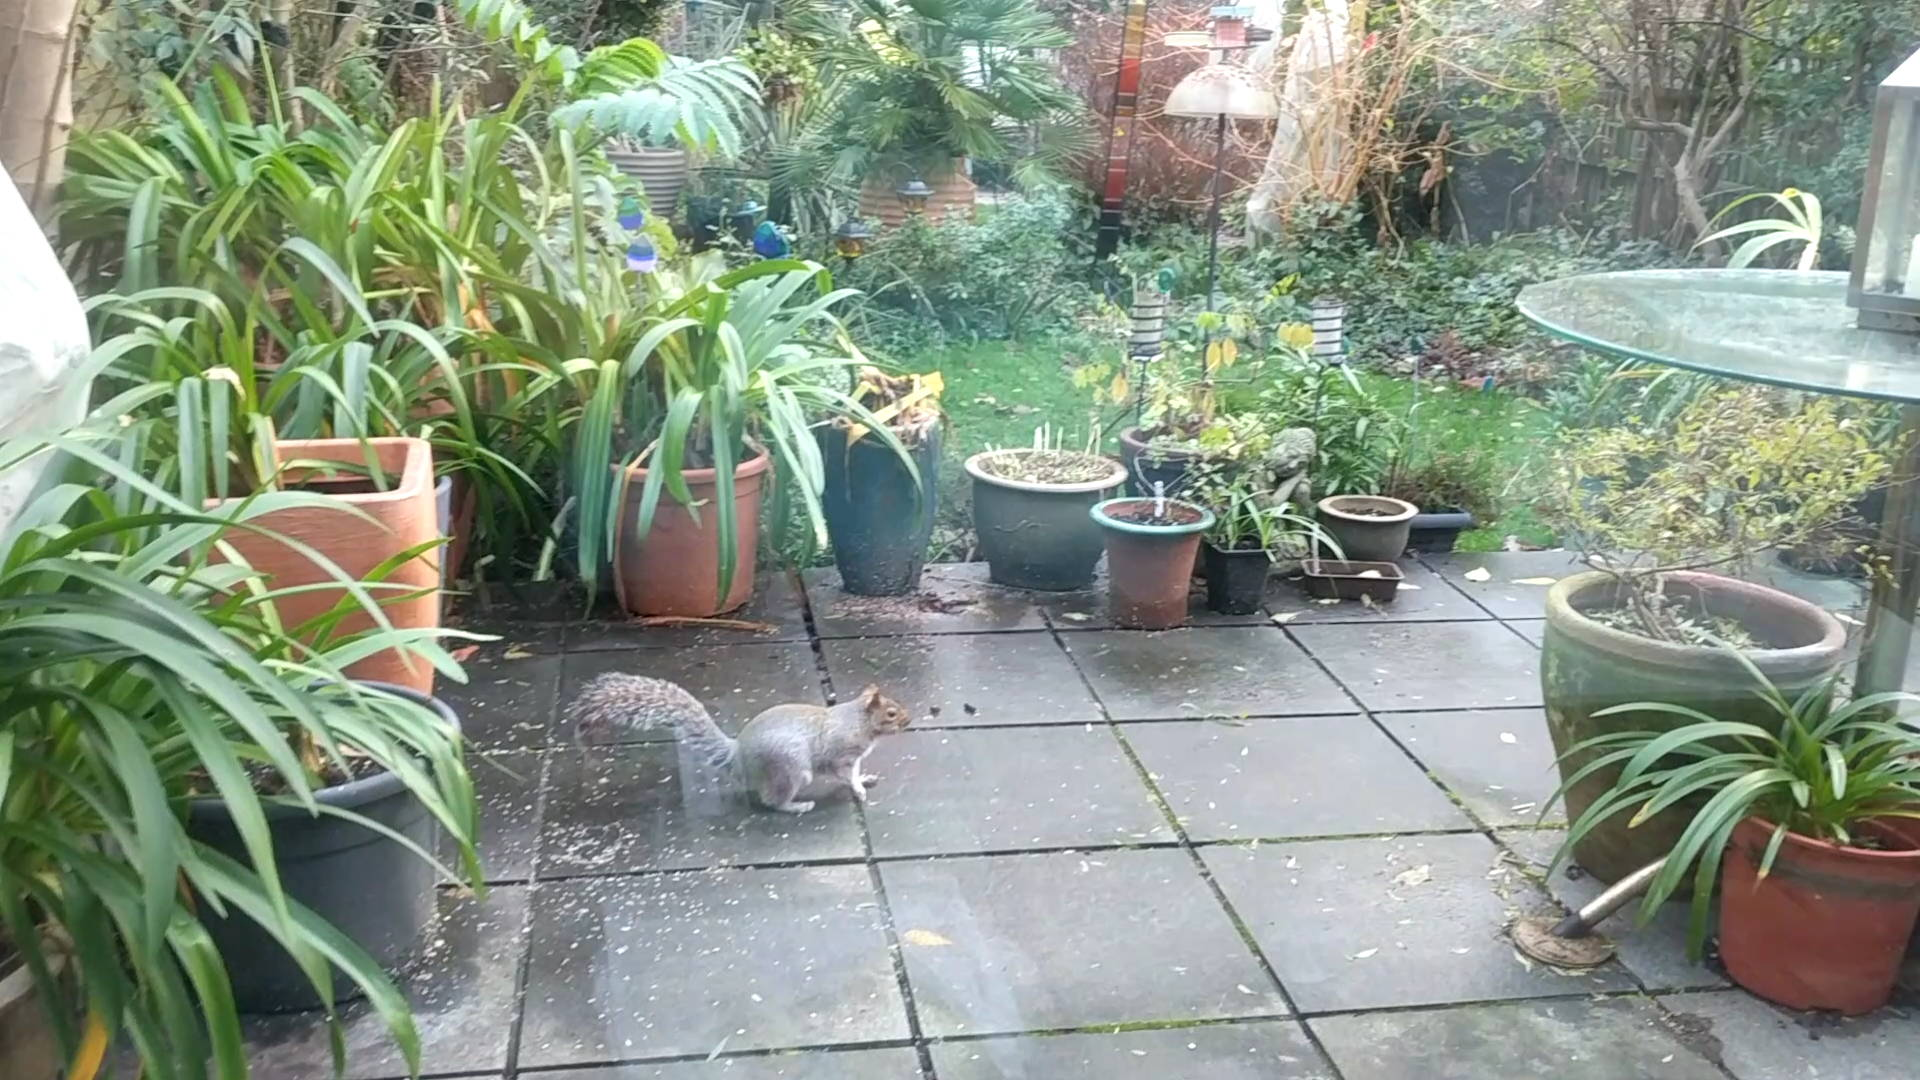 Got a squirrel visitor on our first Sunday morning in England 我们在英格兰的第一个周日早上看见一只松鼠